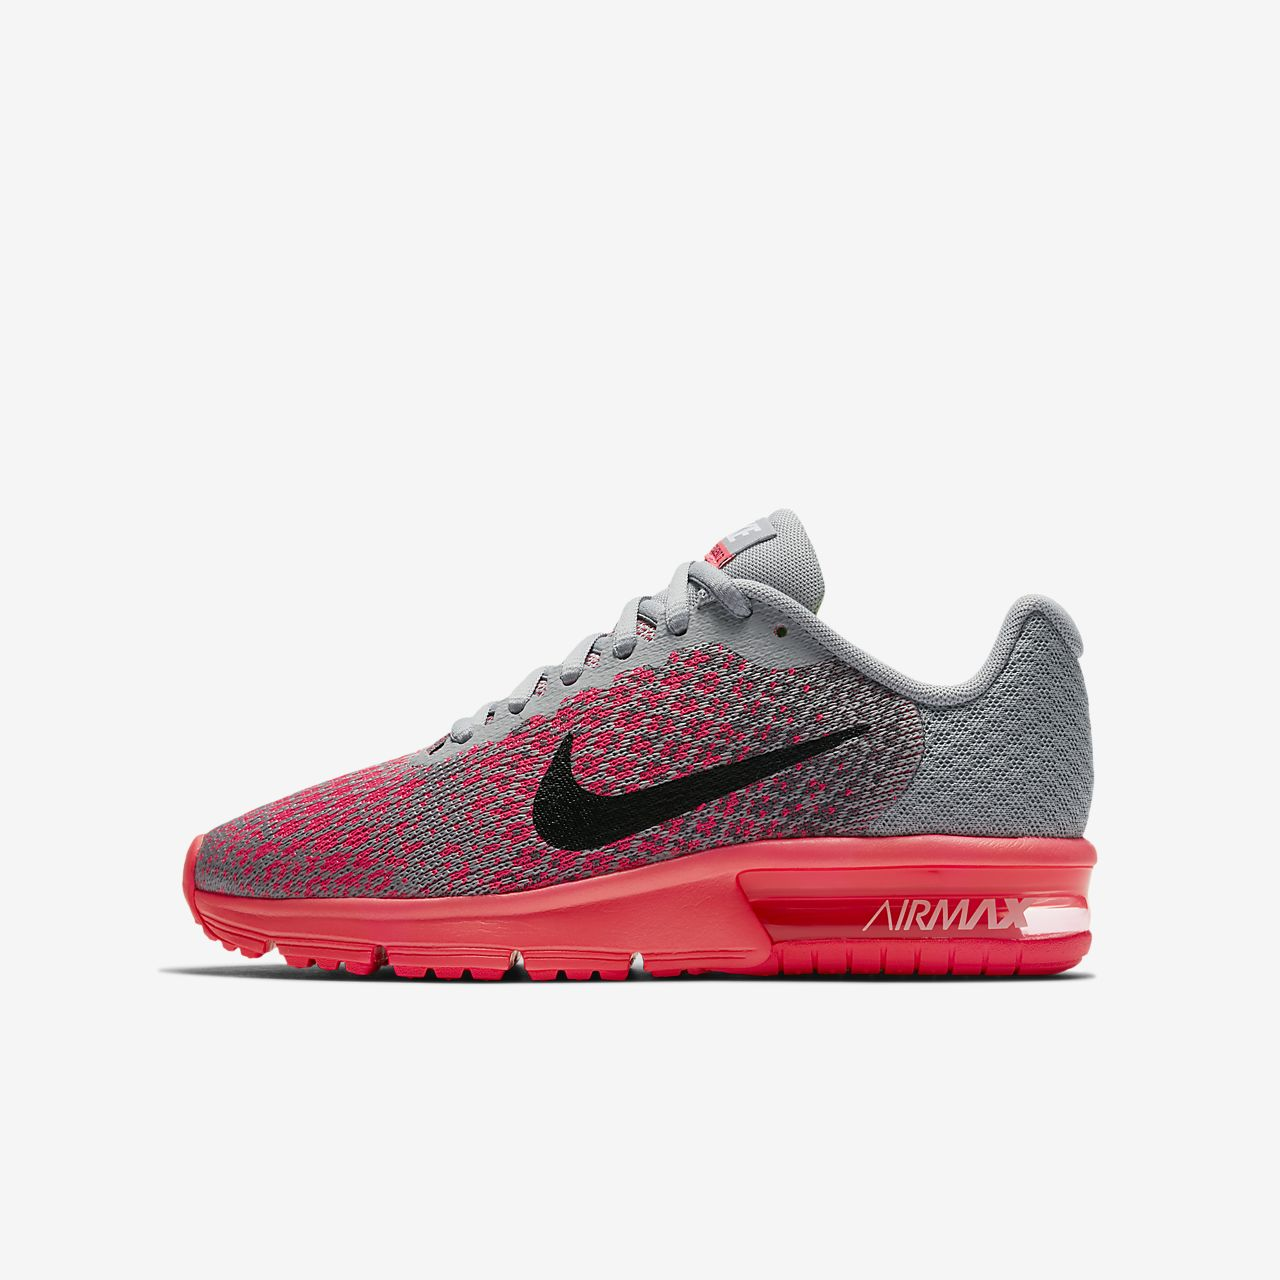 big sale 672c3 78248 ... Chaussure de running Nike Air Max Sequent 2 pour Enfant plus âgé